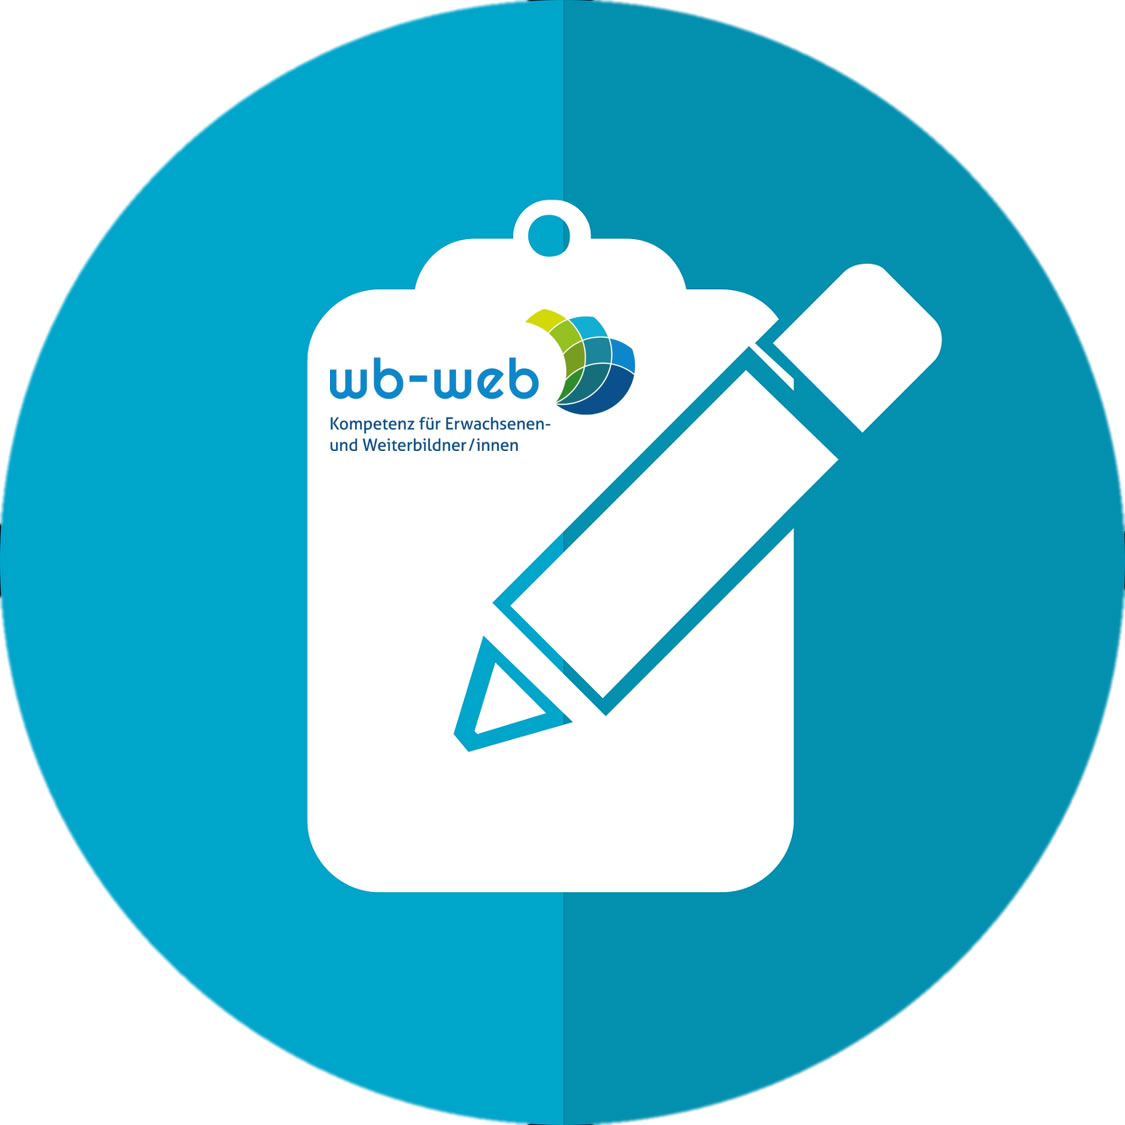 wb-web-Onlineumfrage